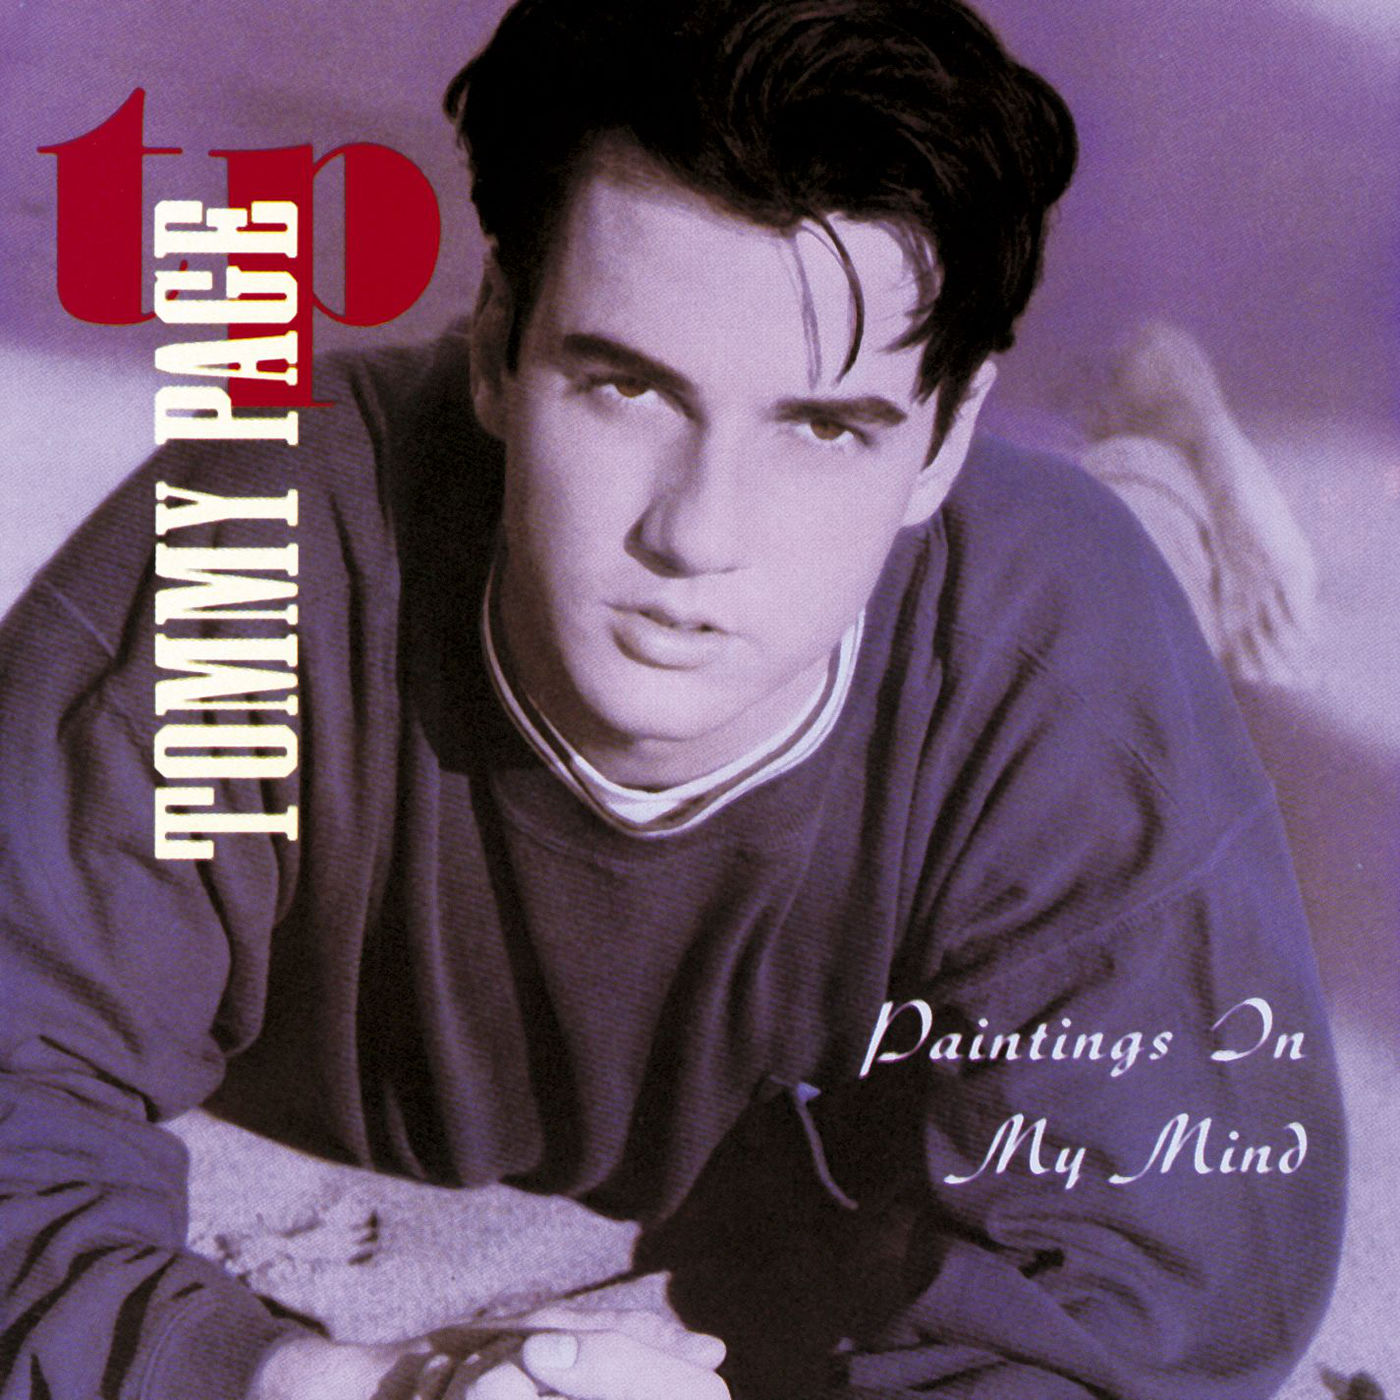 Paintings In My Mind - Tommy Page